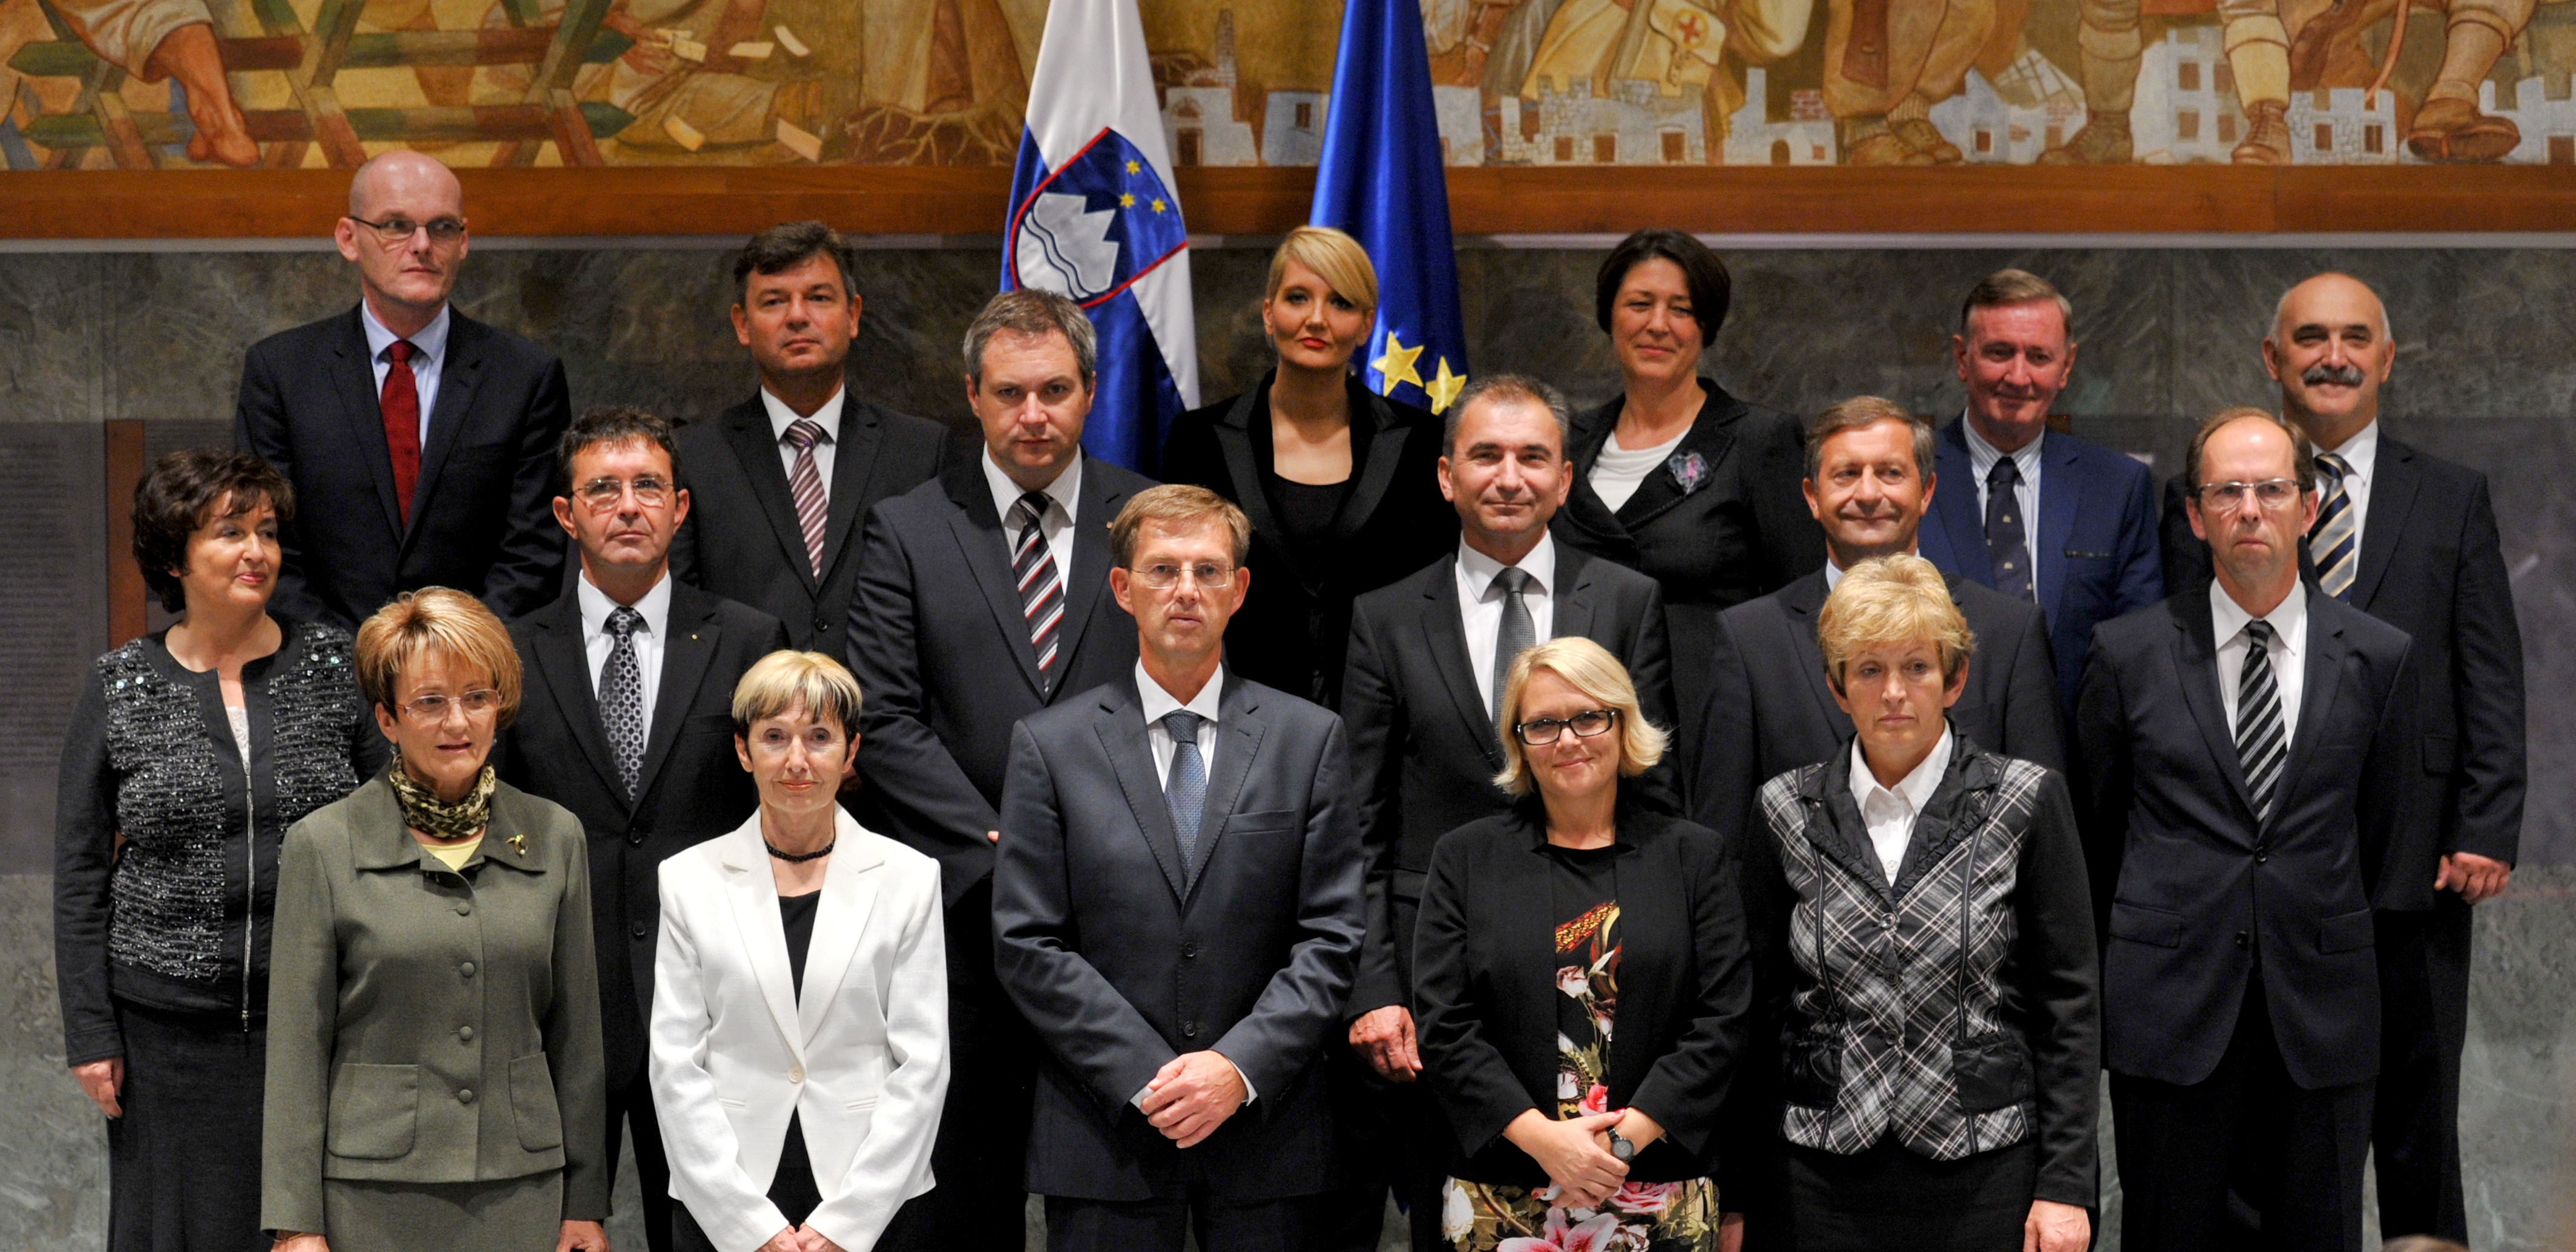 12th government of slovenia wikipedia